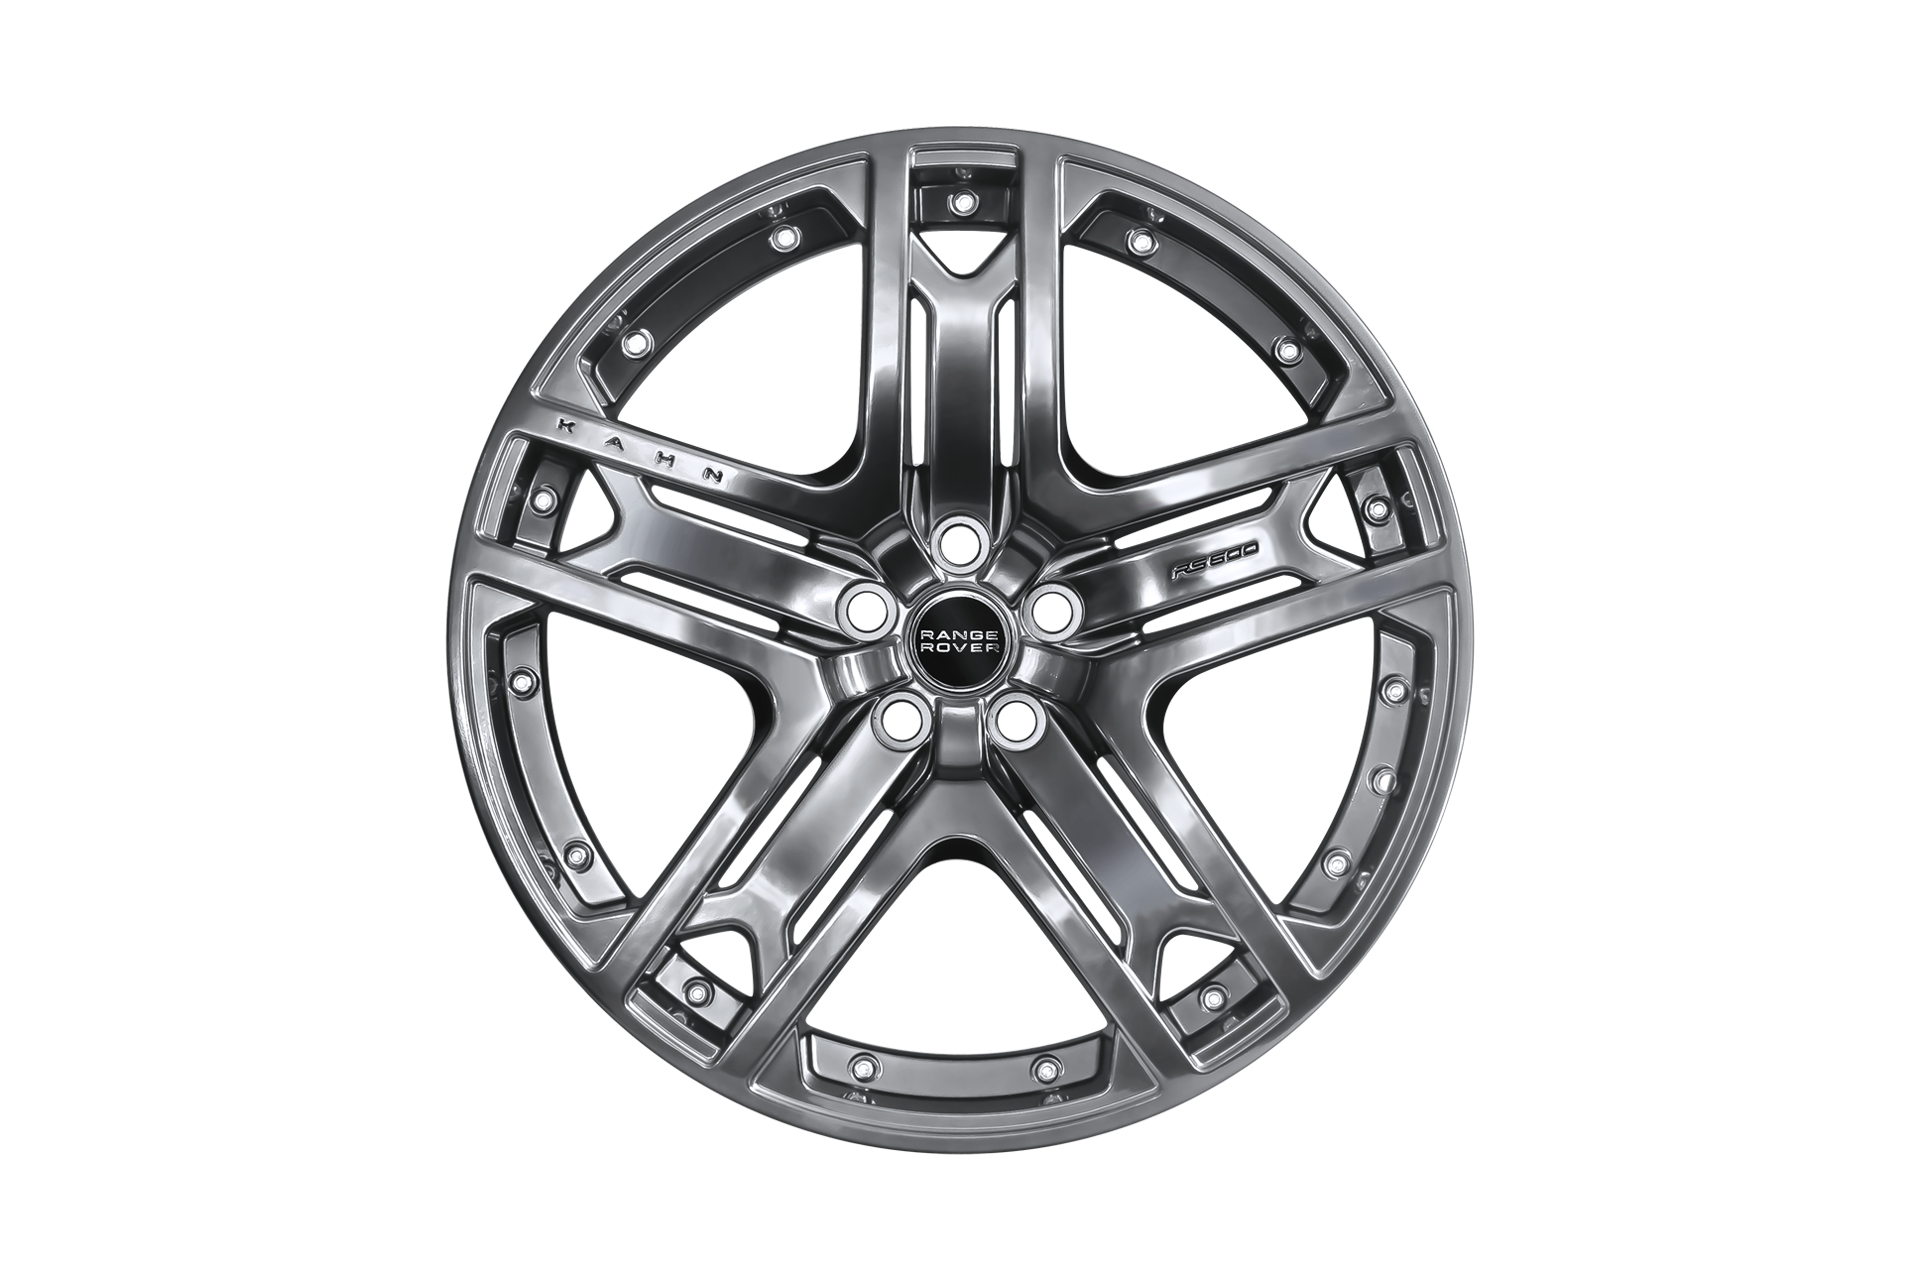 Range Rover Sport (2005-2013) Rs600 Light Alloy Wheels by Kahn - Image 3914